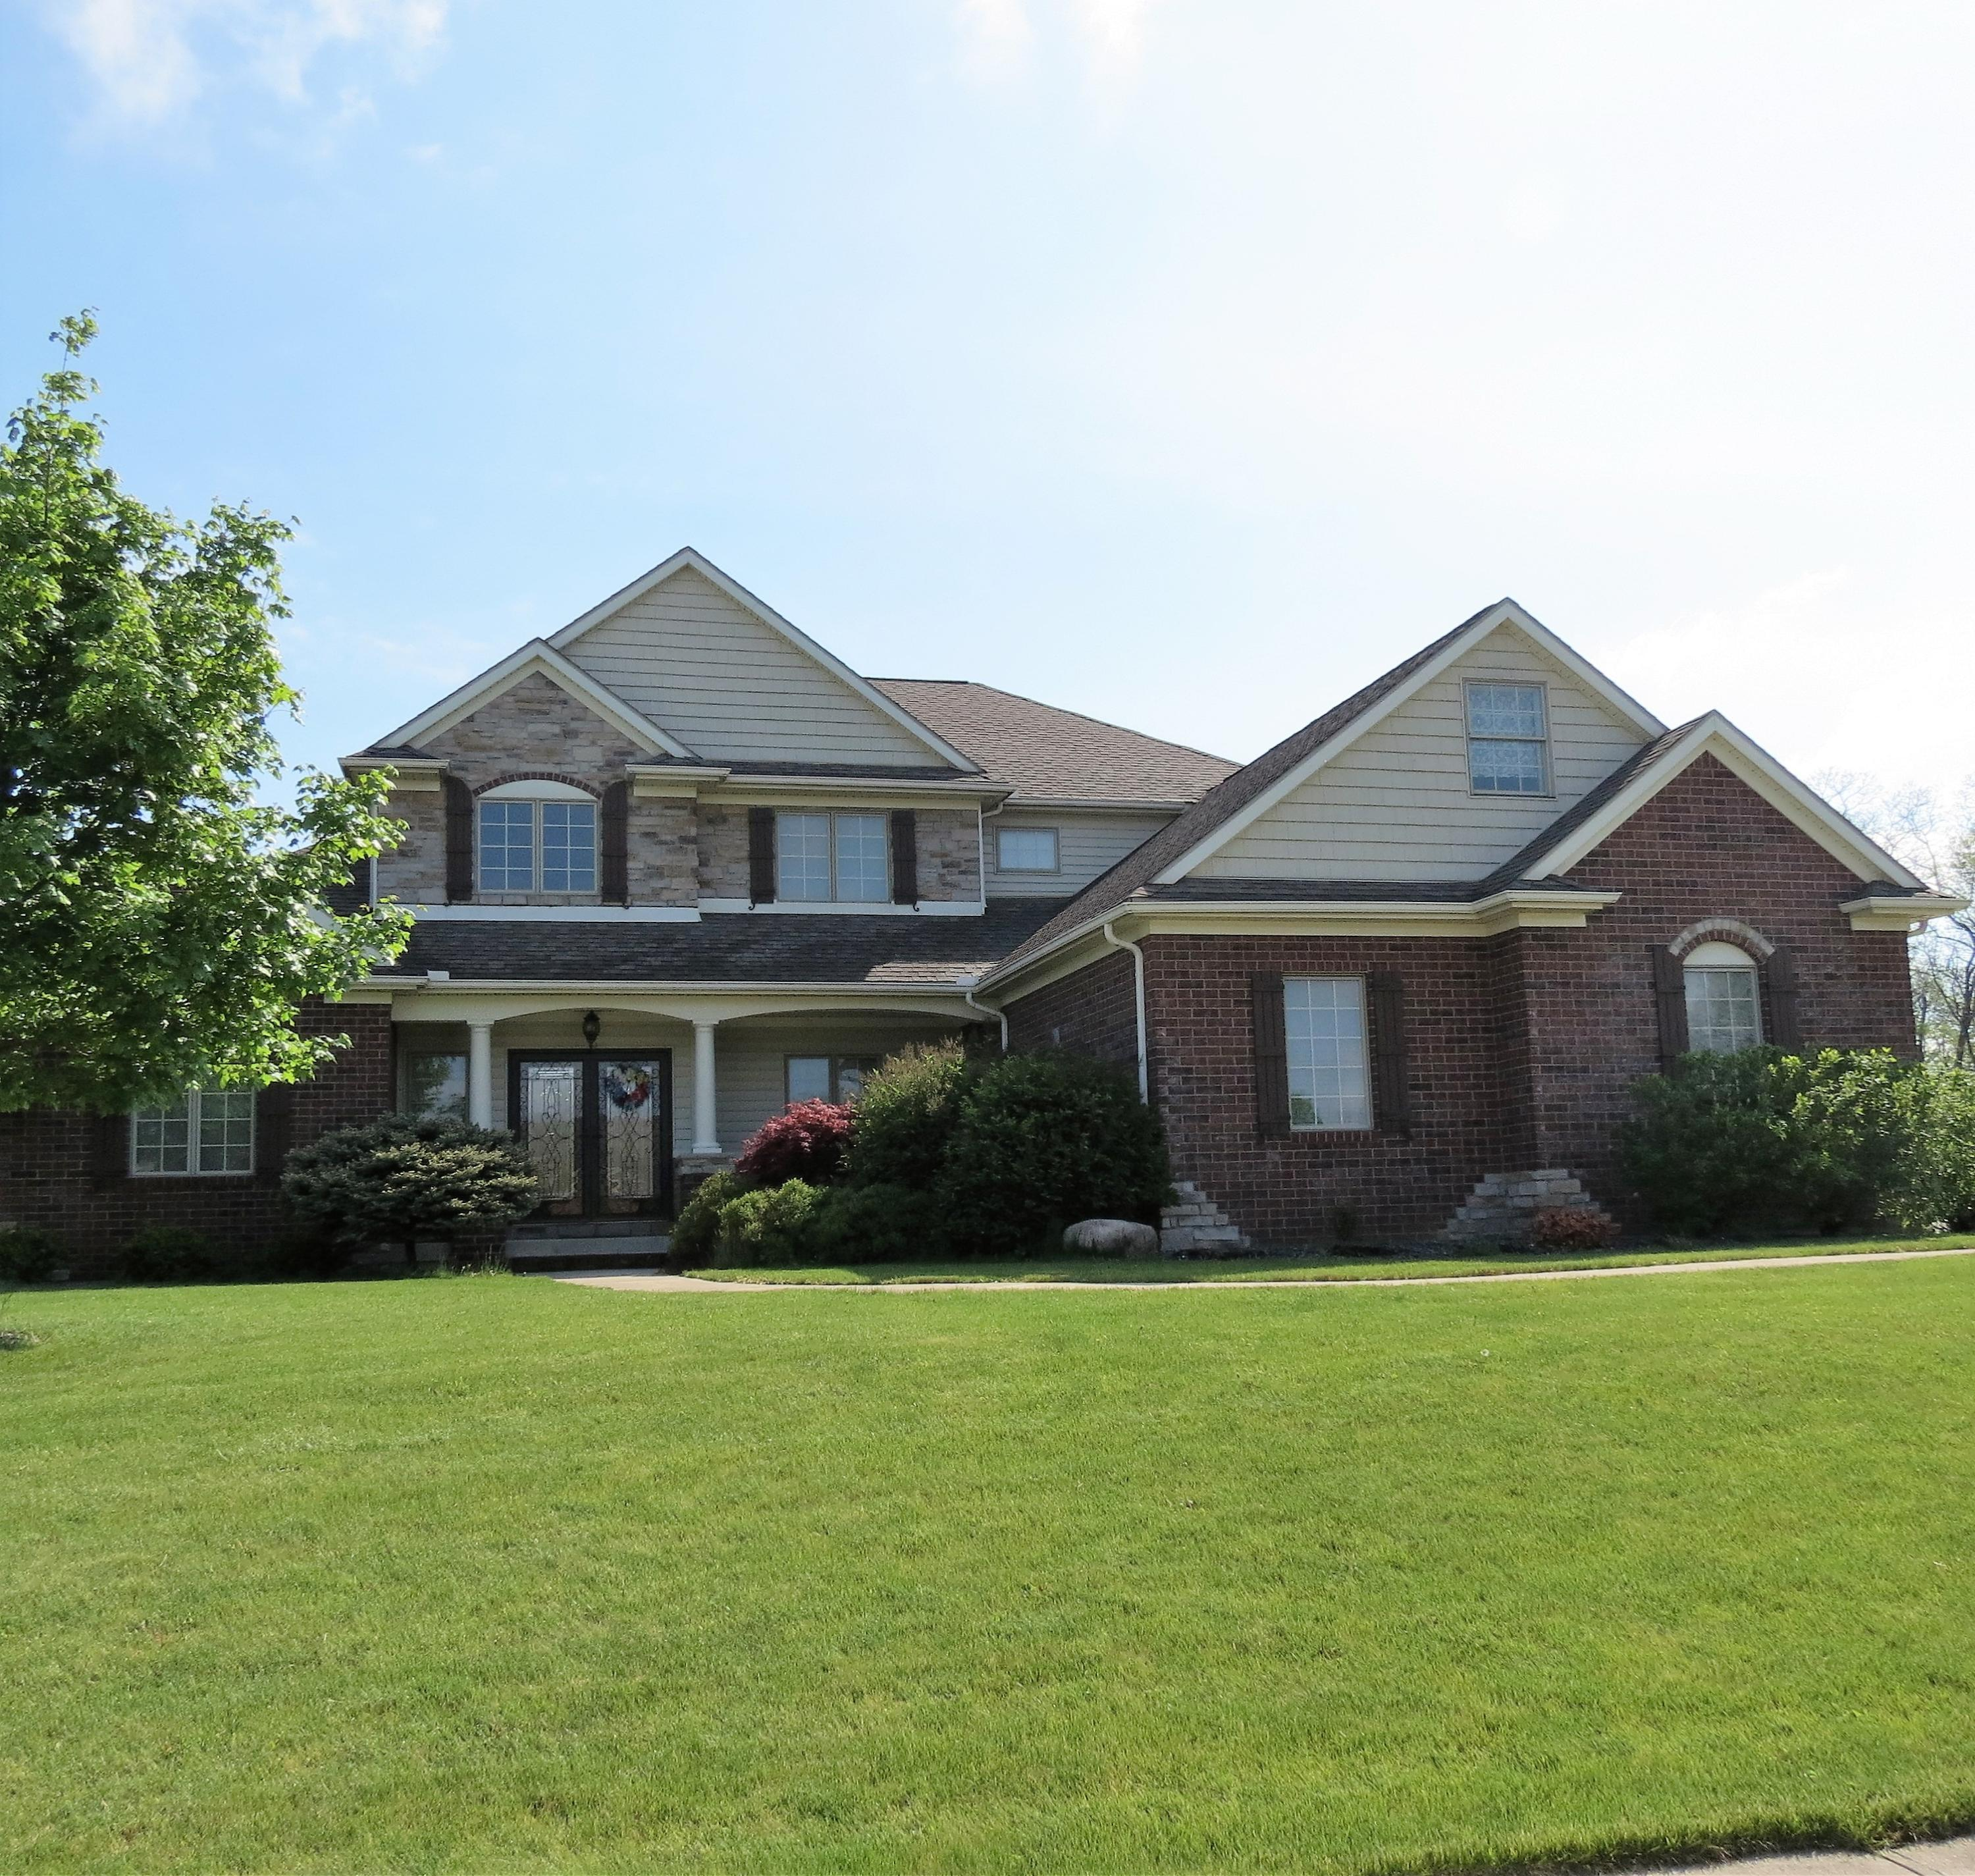 1186 Saint Clair Drive Property Photo - Sidney, OH real estate listing